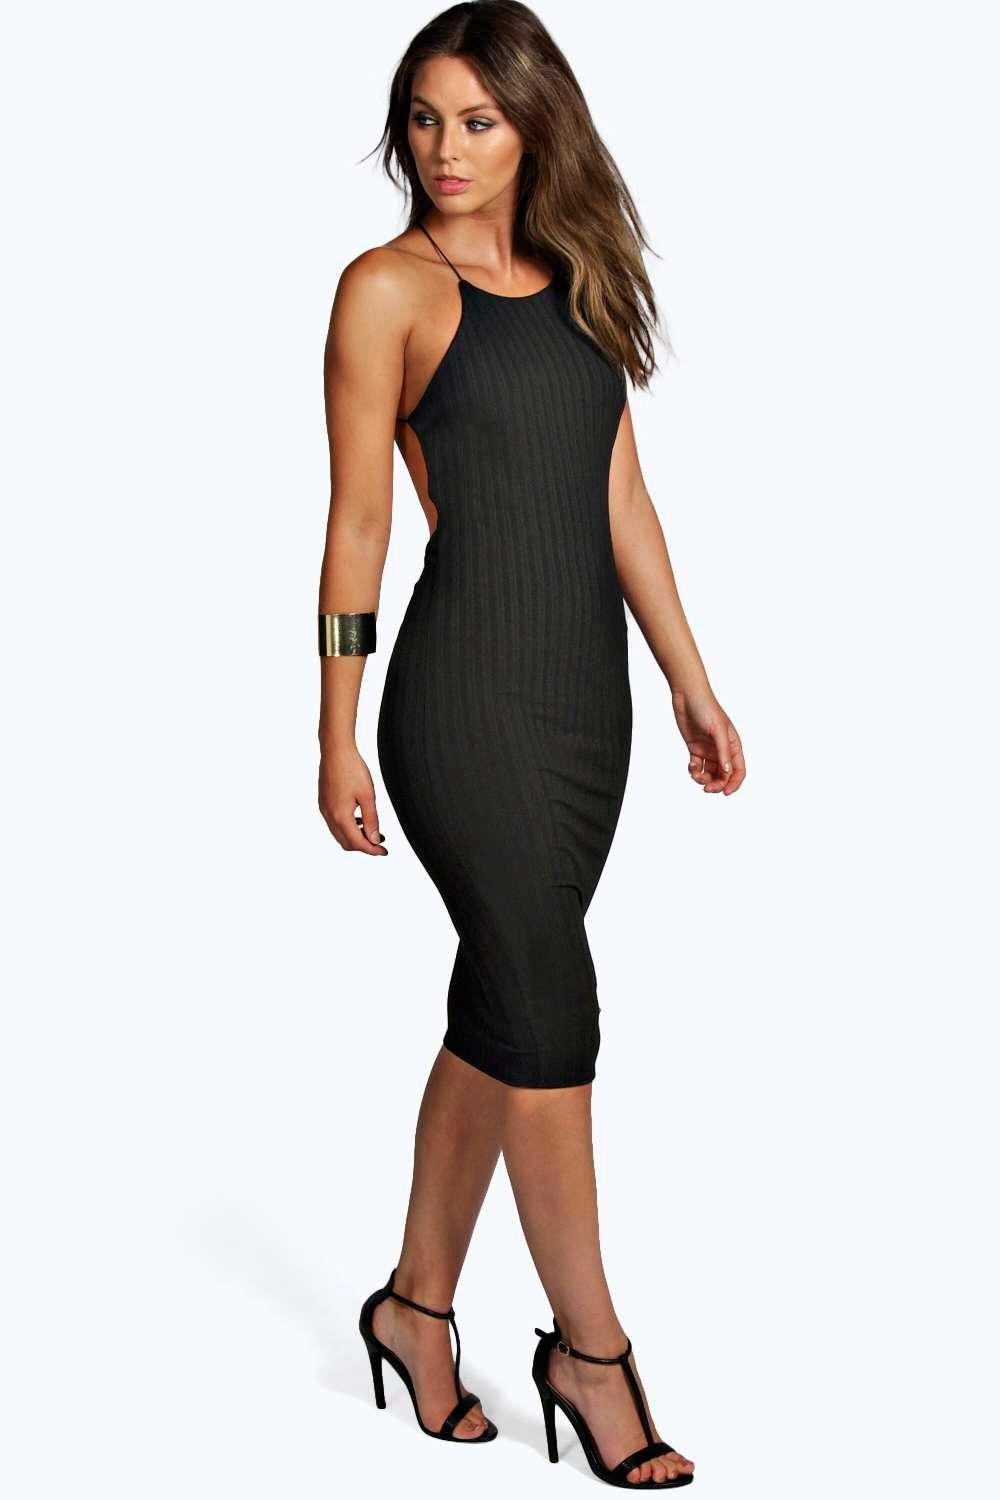 be81b7f656d5 Womens Black Silvia Ribbed Strappy Midi Bodycon Dress. Hover to zoom